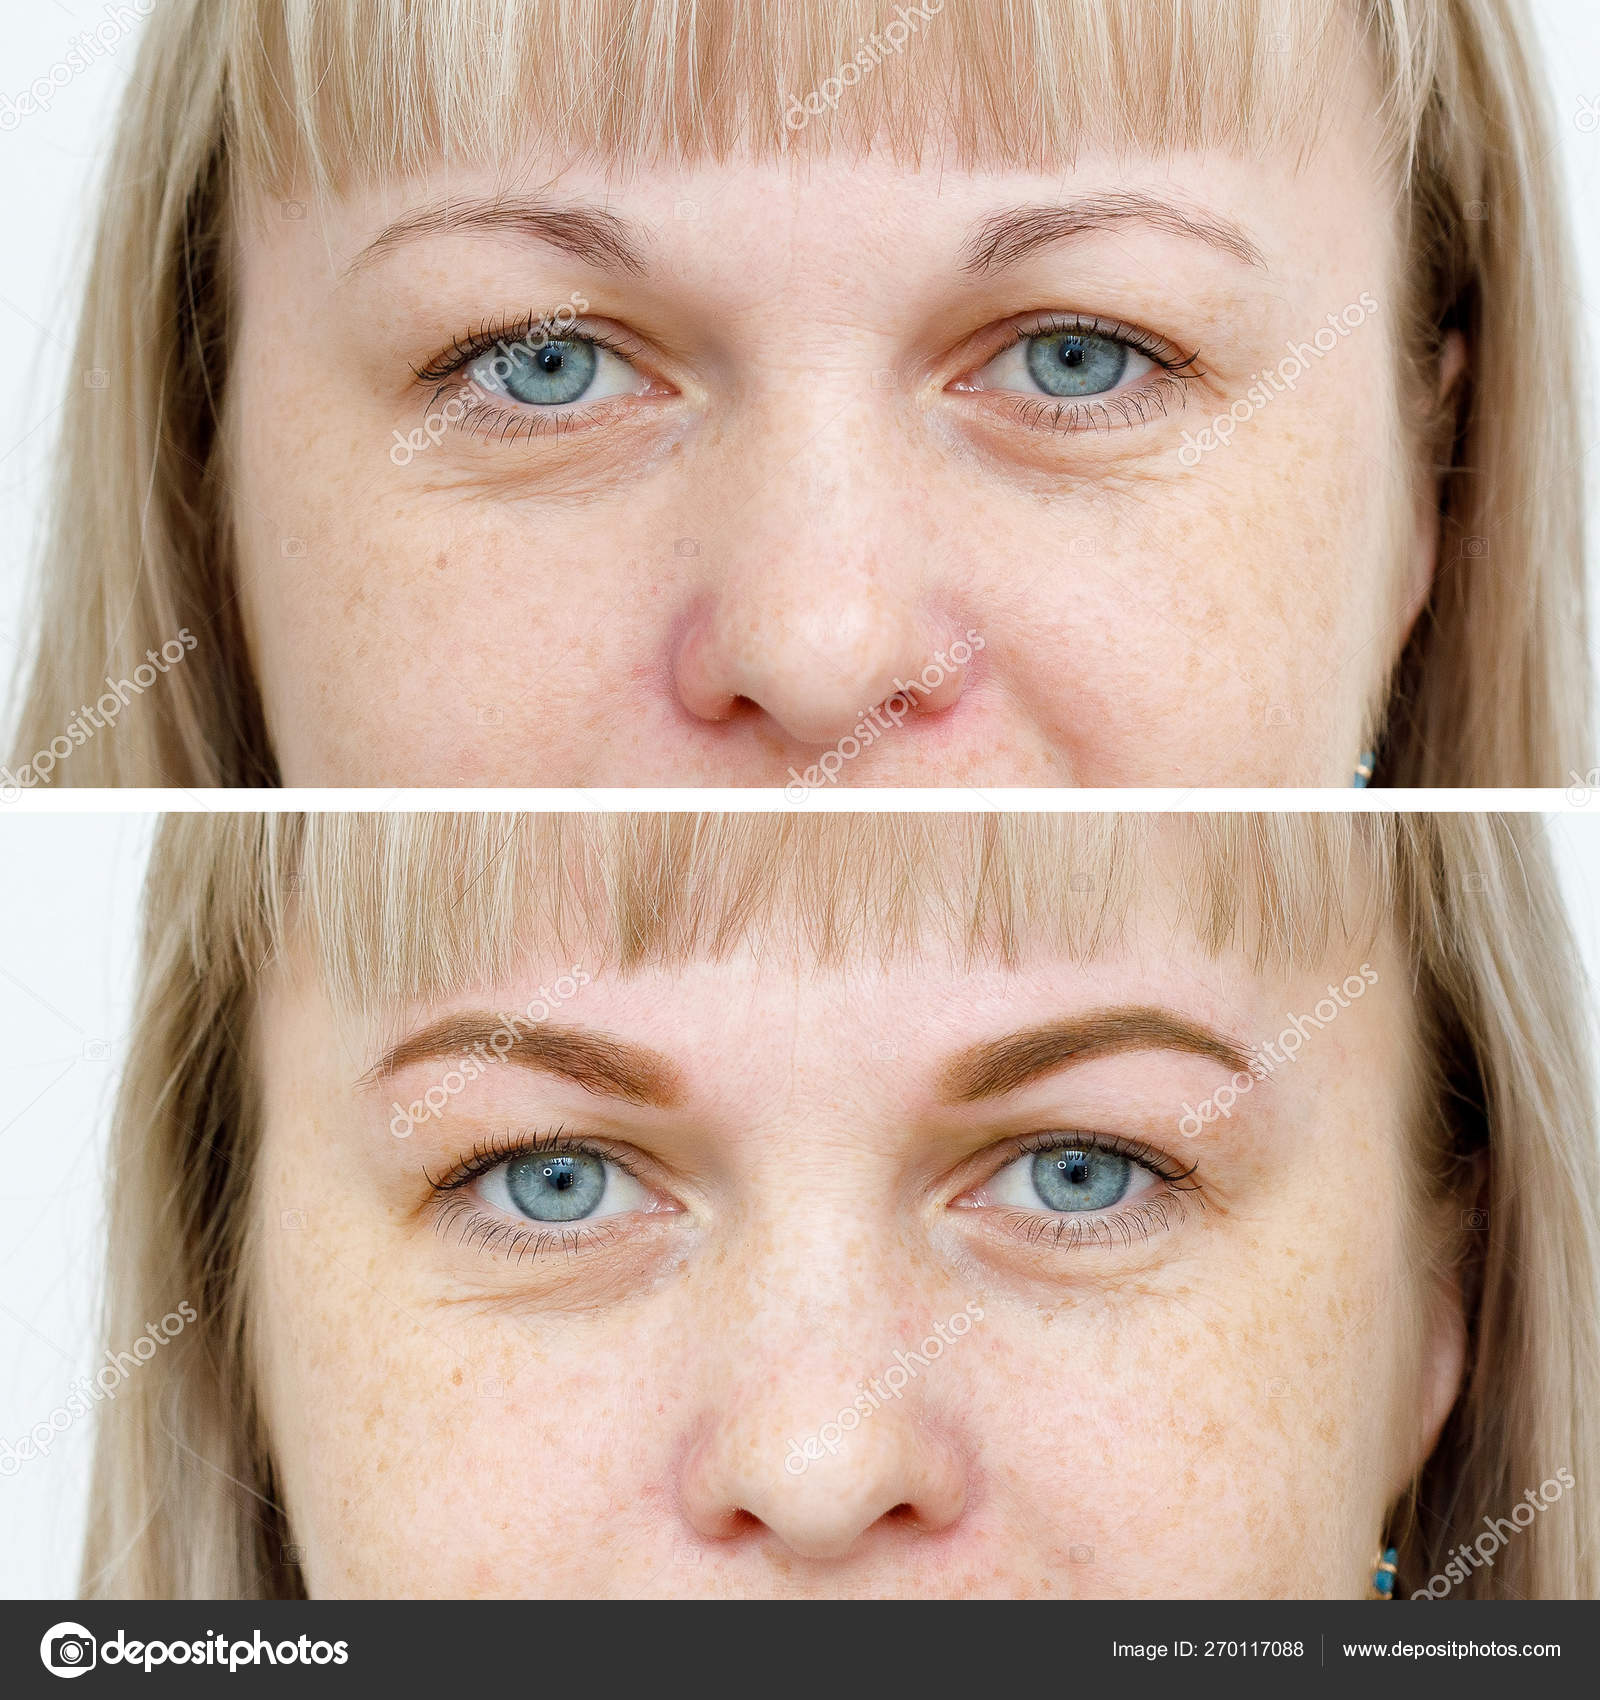 depositphotos_270117088-stock-photo-photo-comparison-before-and-after.jpg